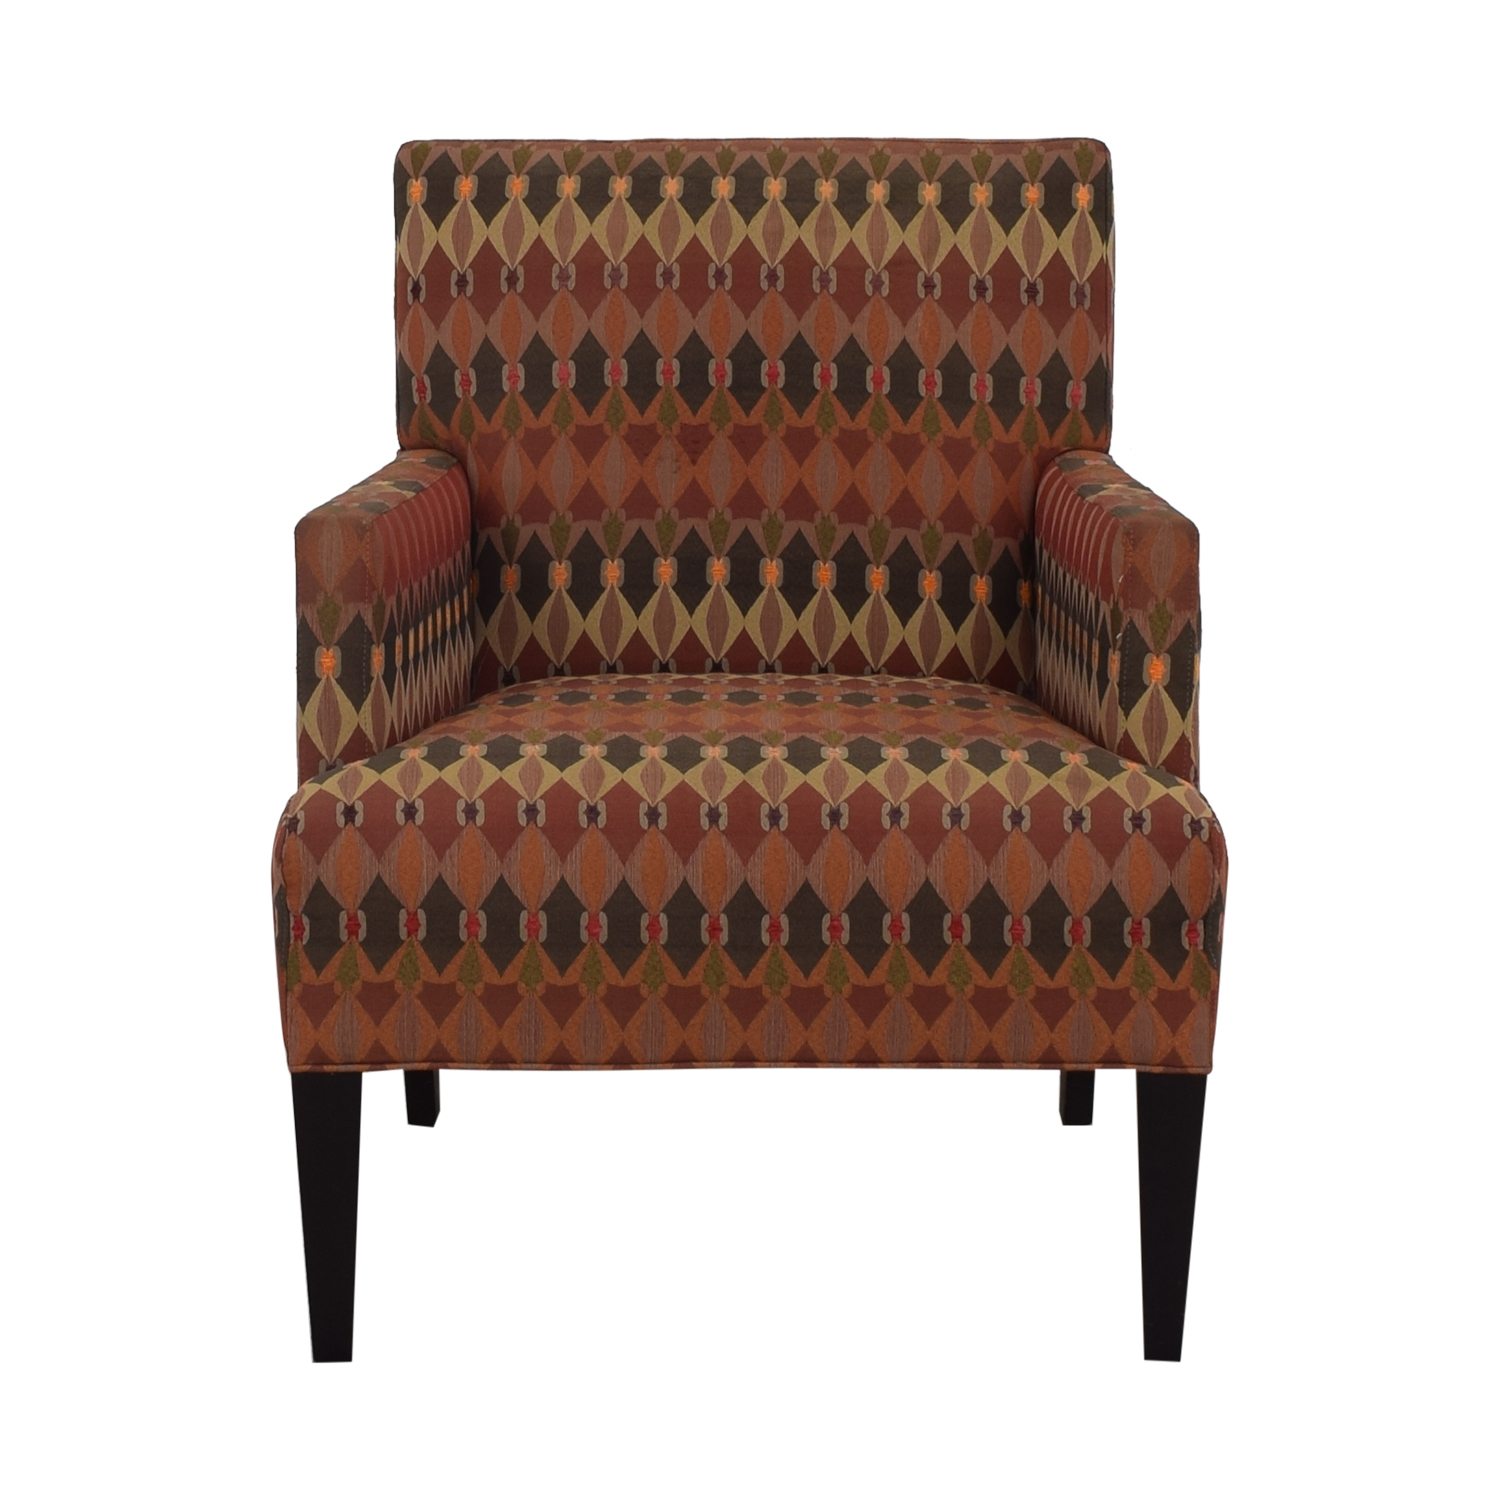 Crate & Barrel Tux Chair / Chairs